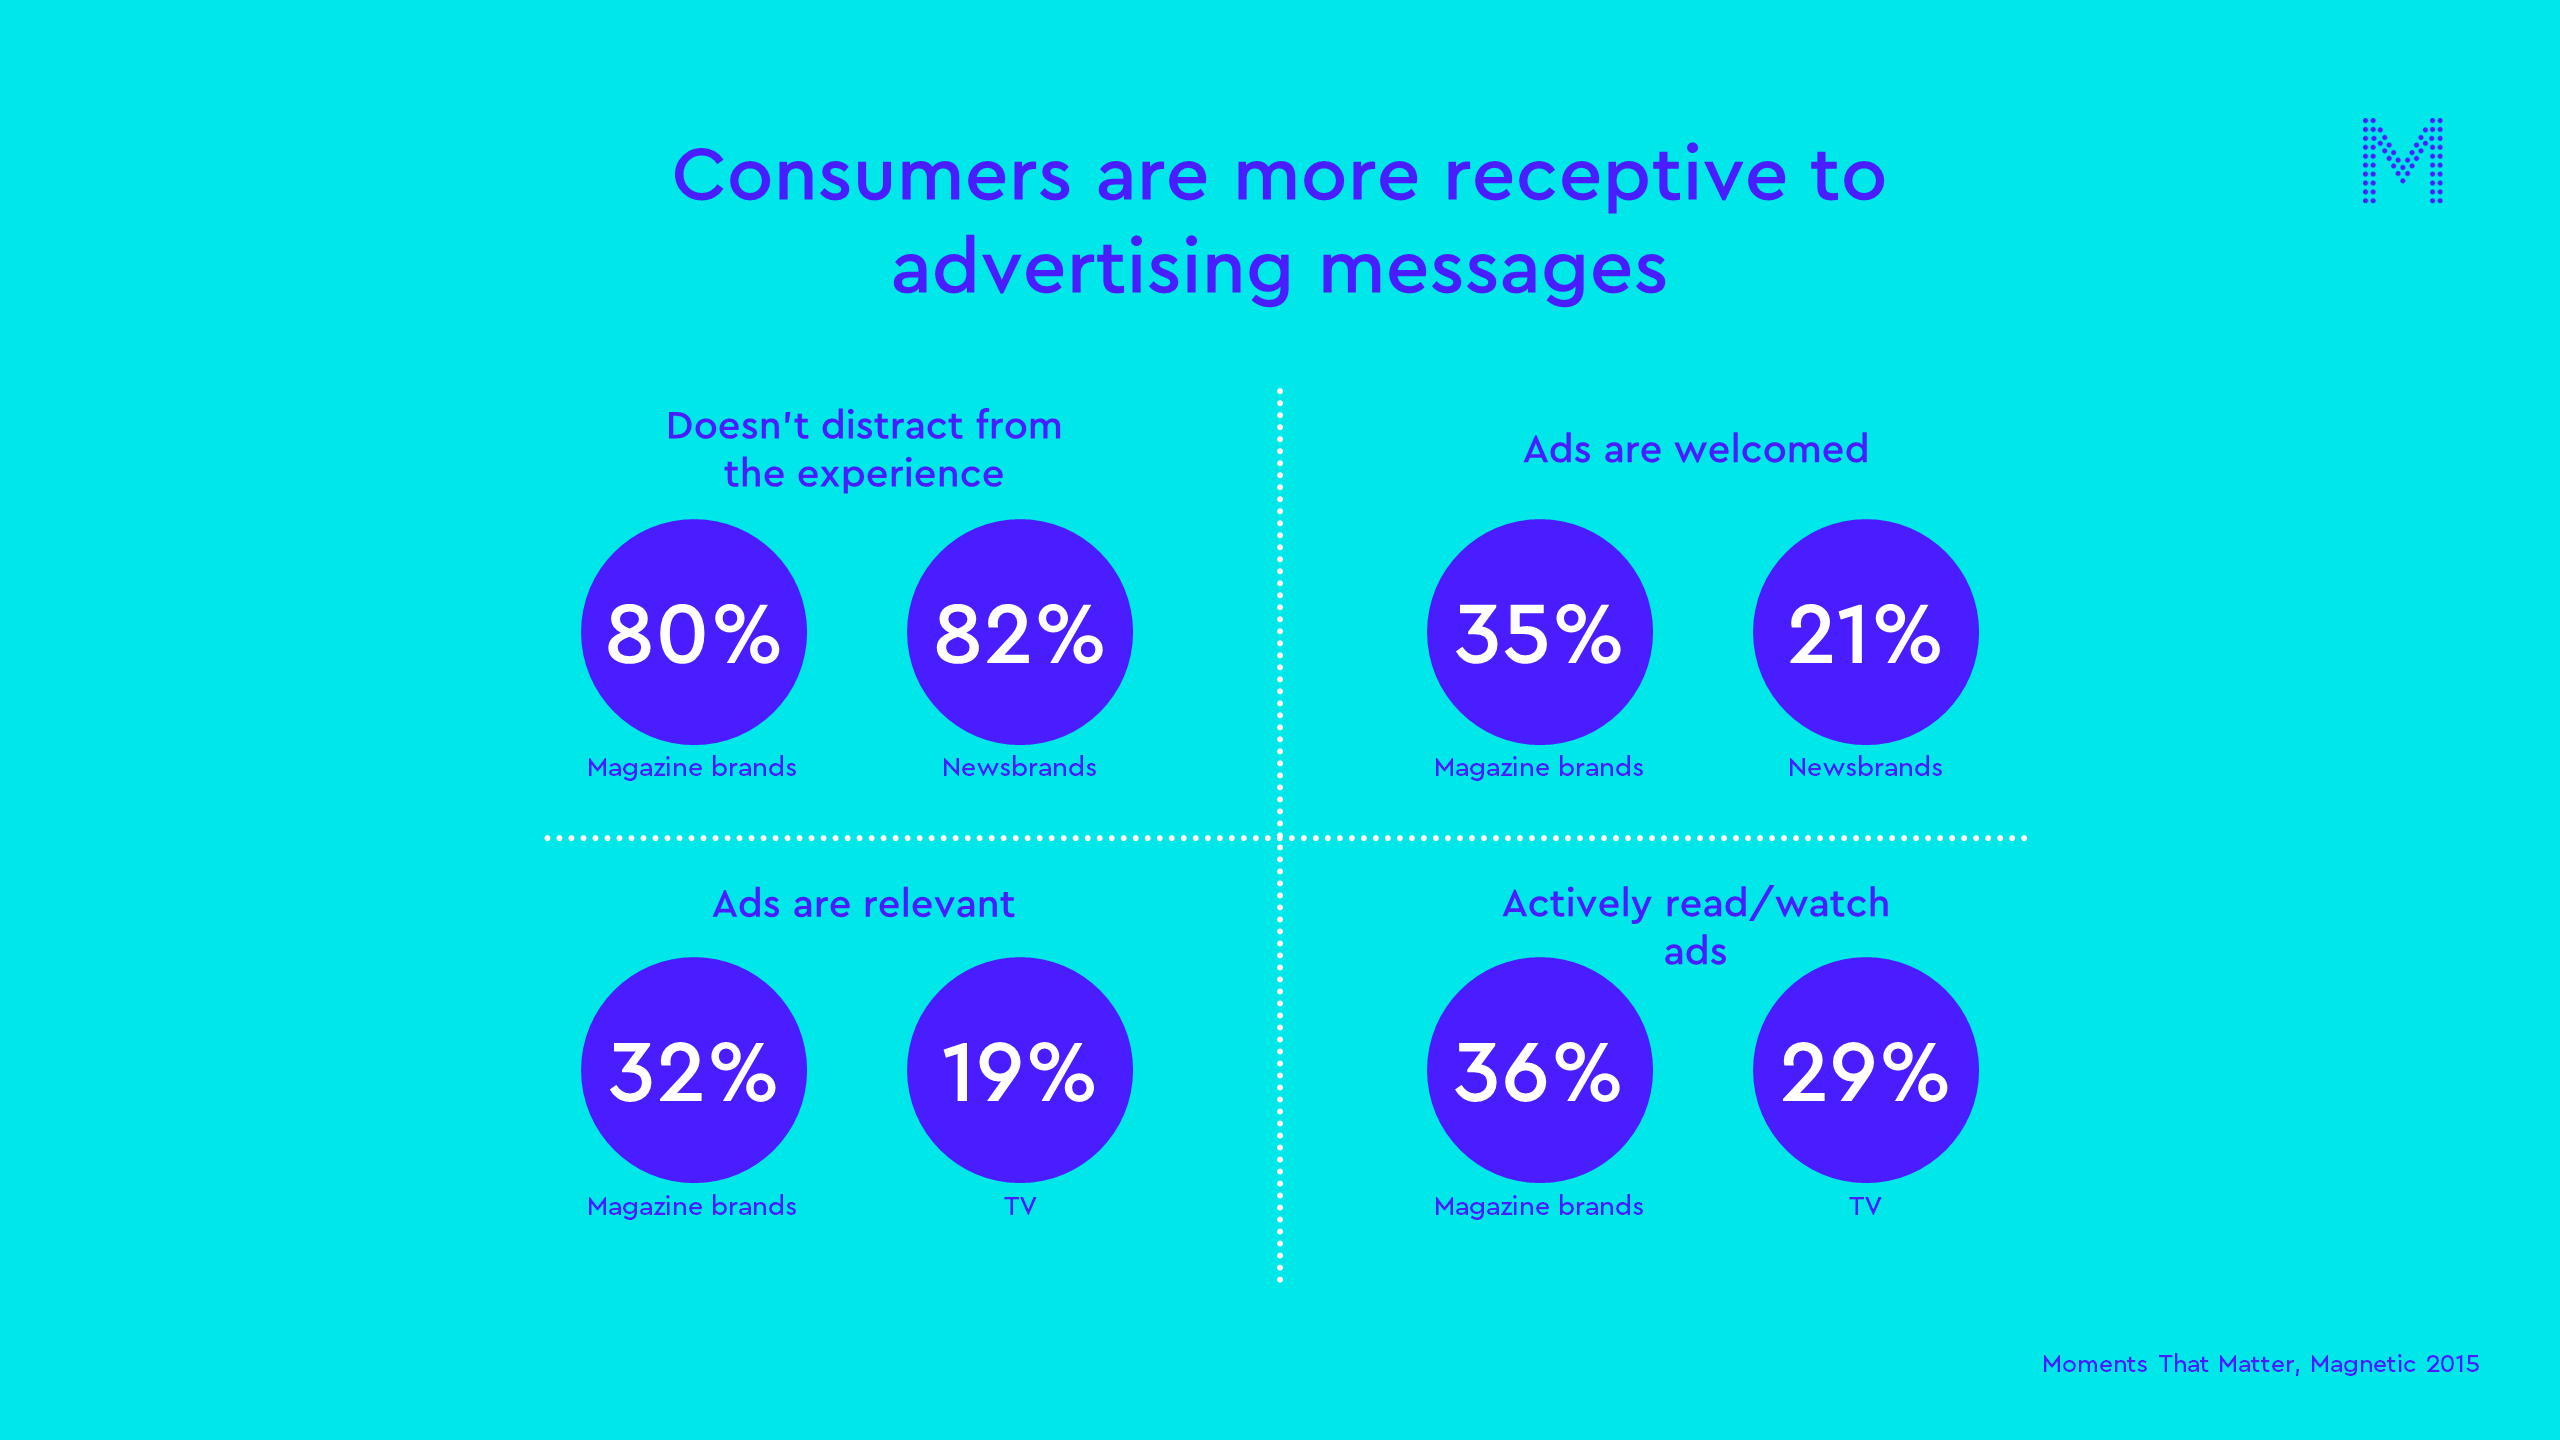 Consumers are more receptive to